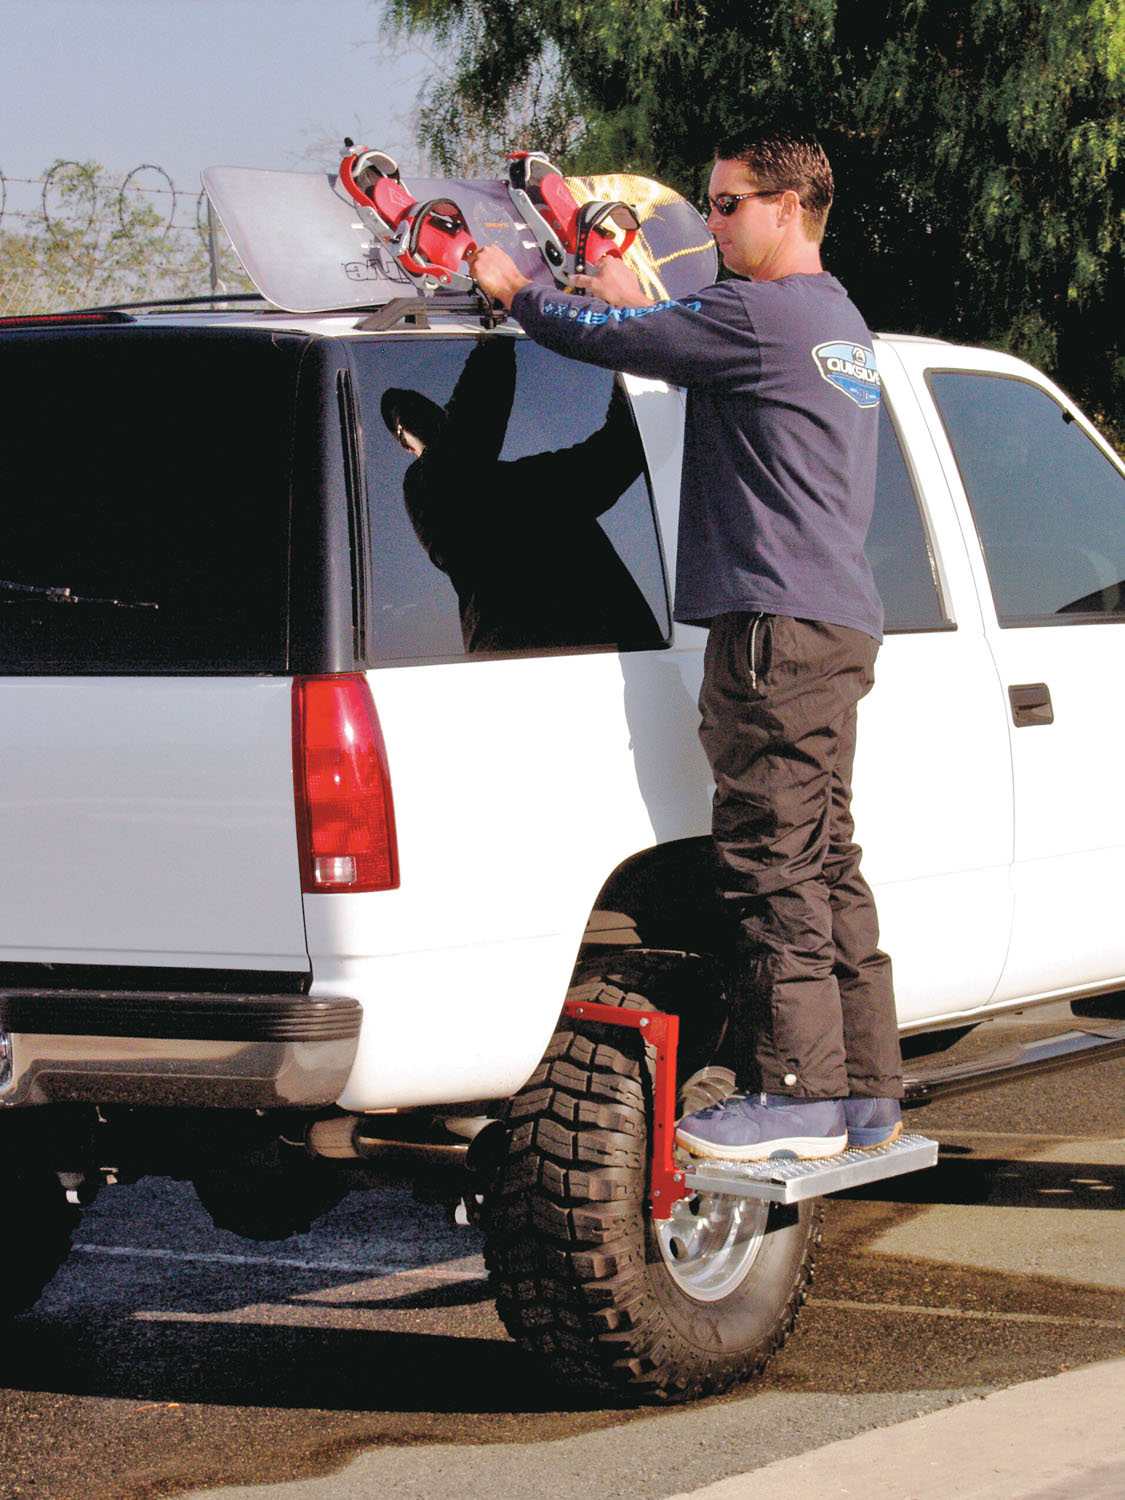 Powerbuilt Folding Truck Step Fits Over Tire to Clean, Reach Roof Rack - 647596E 3